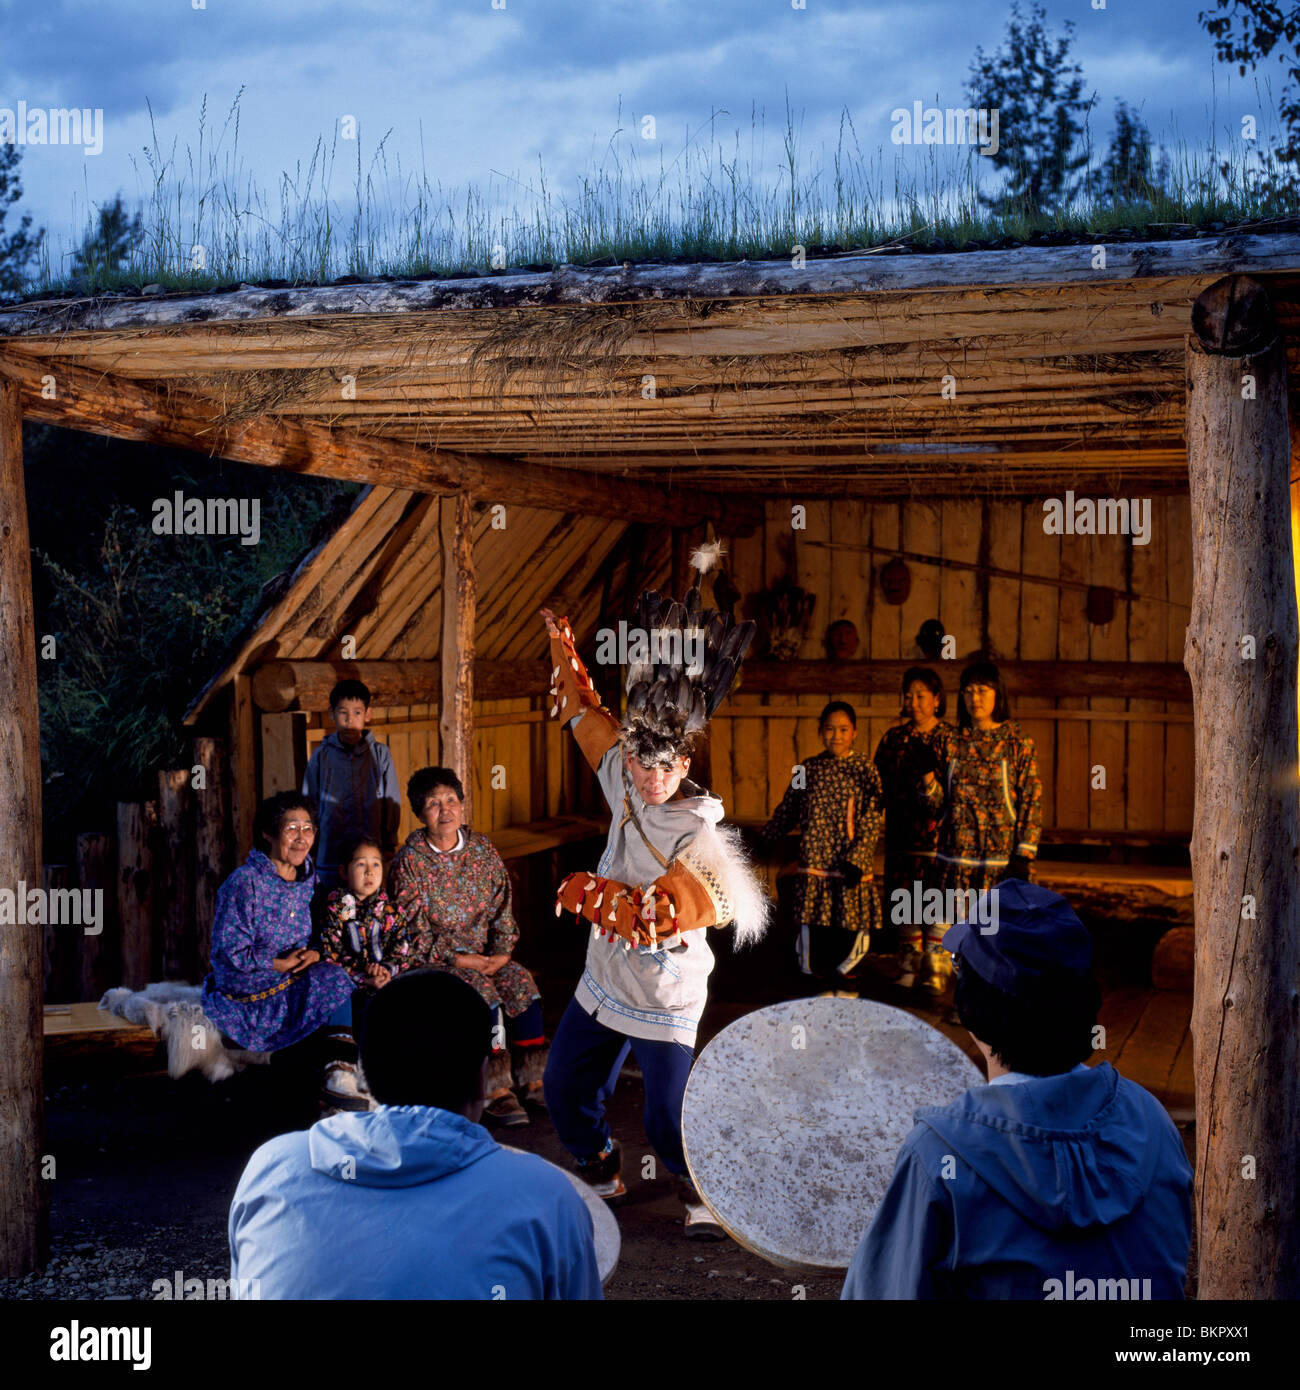 Male Native Inupiat Dancer Performs @ Community House AK Native Heritage Center - Stock Image